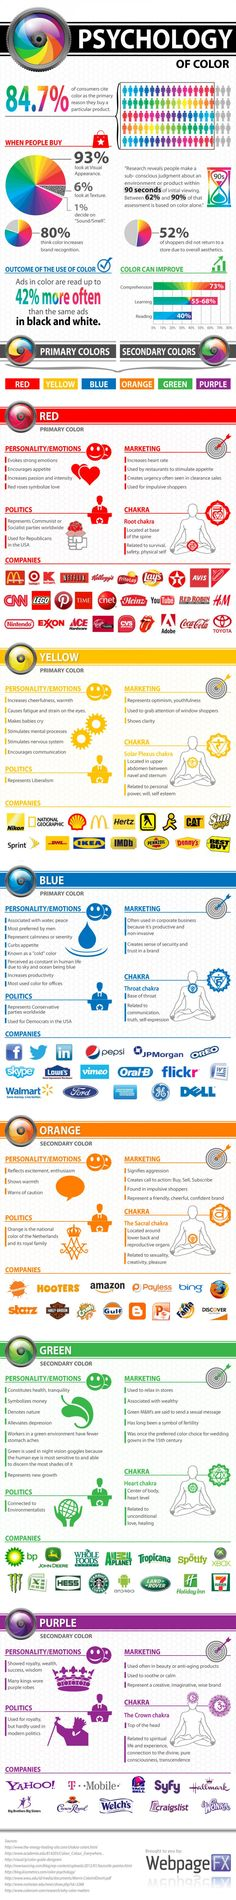 Really cool infographic. I like how they have separate sections like politics and companies